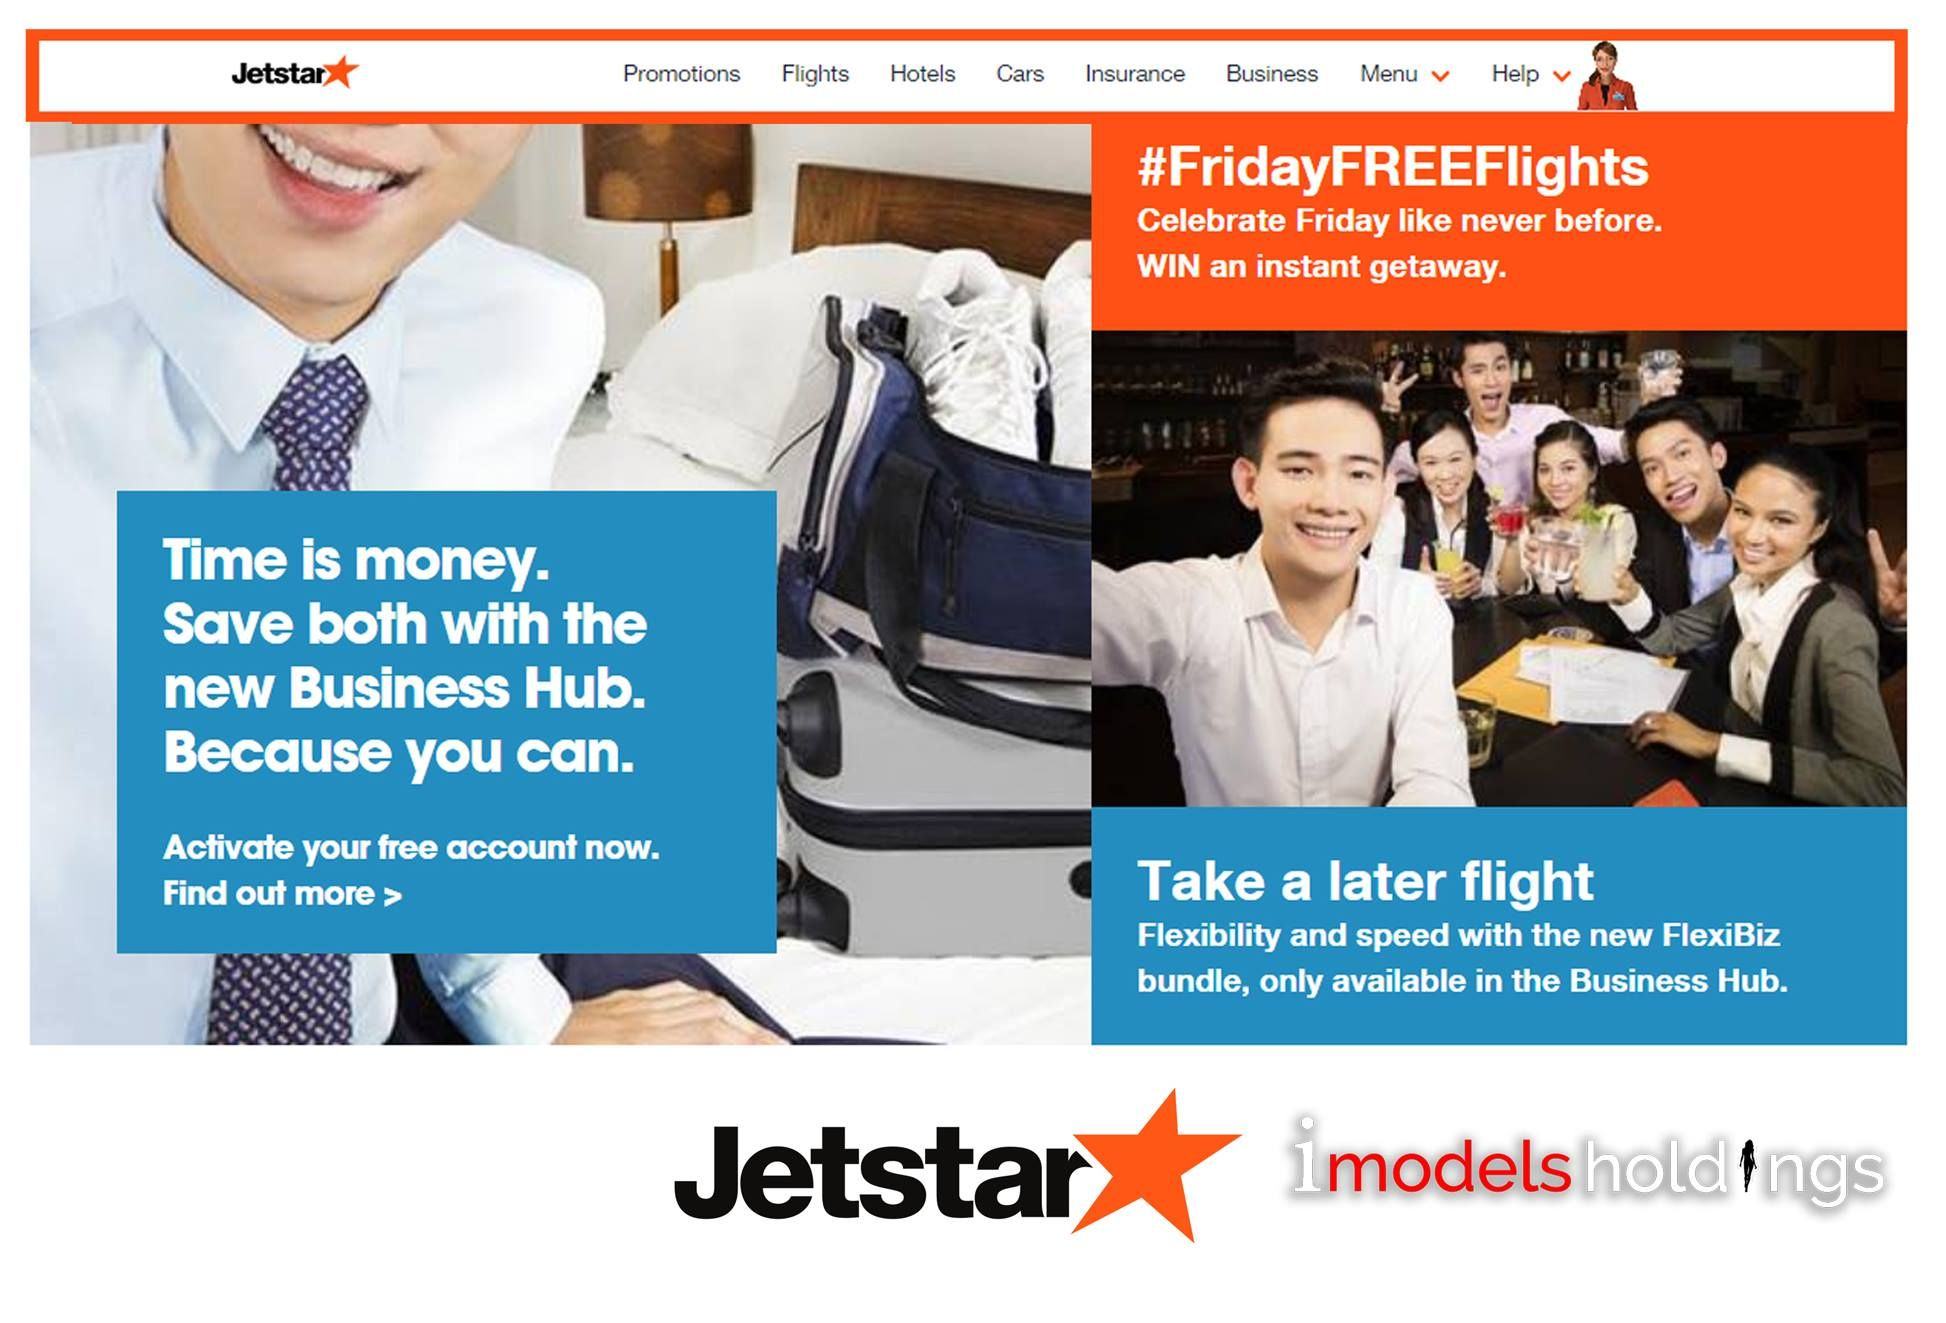 Our models, Jaymie and Rose in this Jetstar print